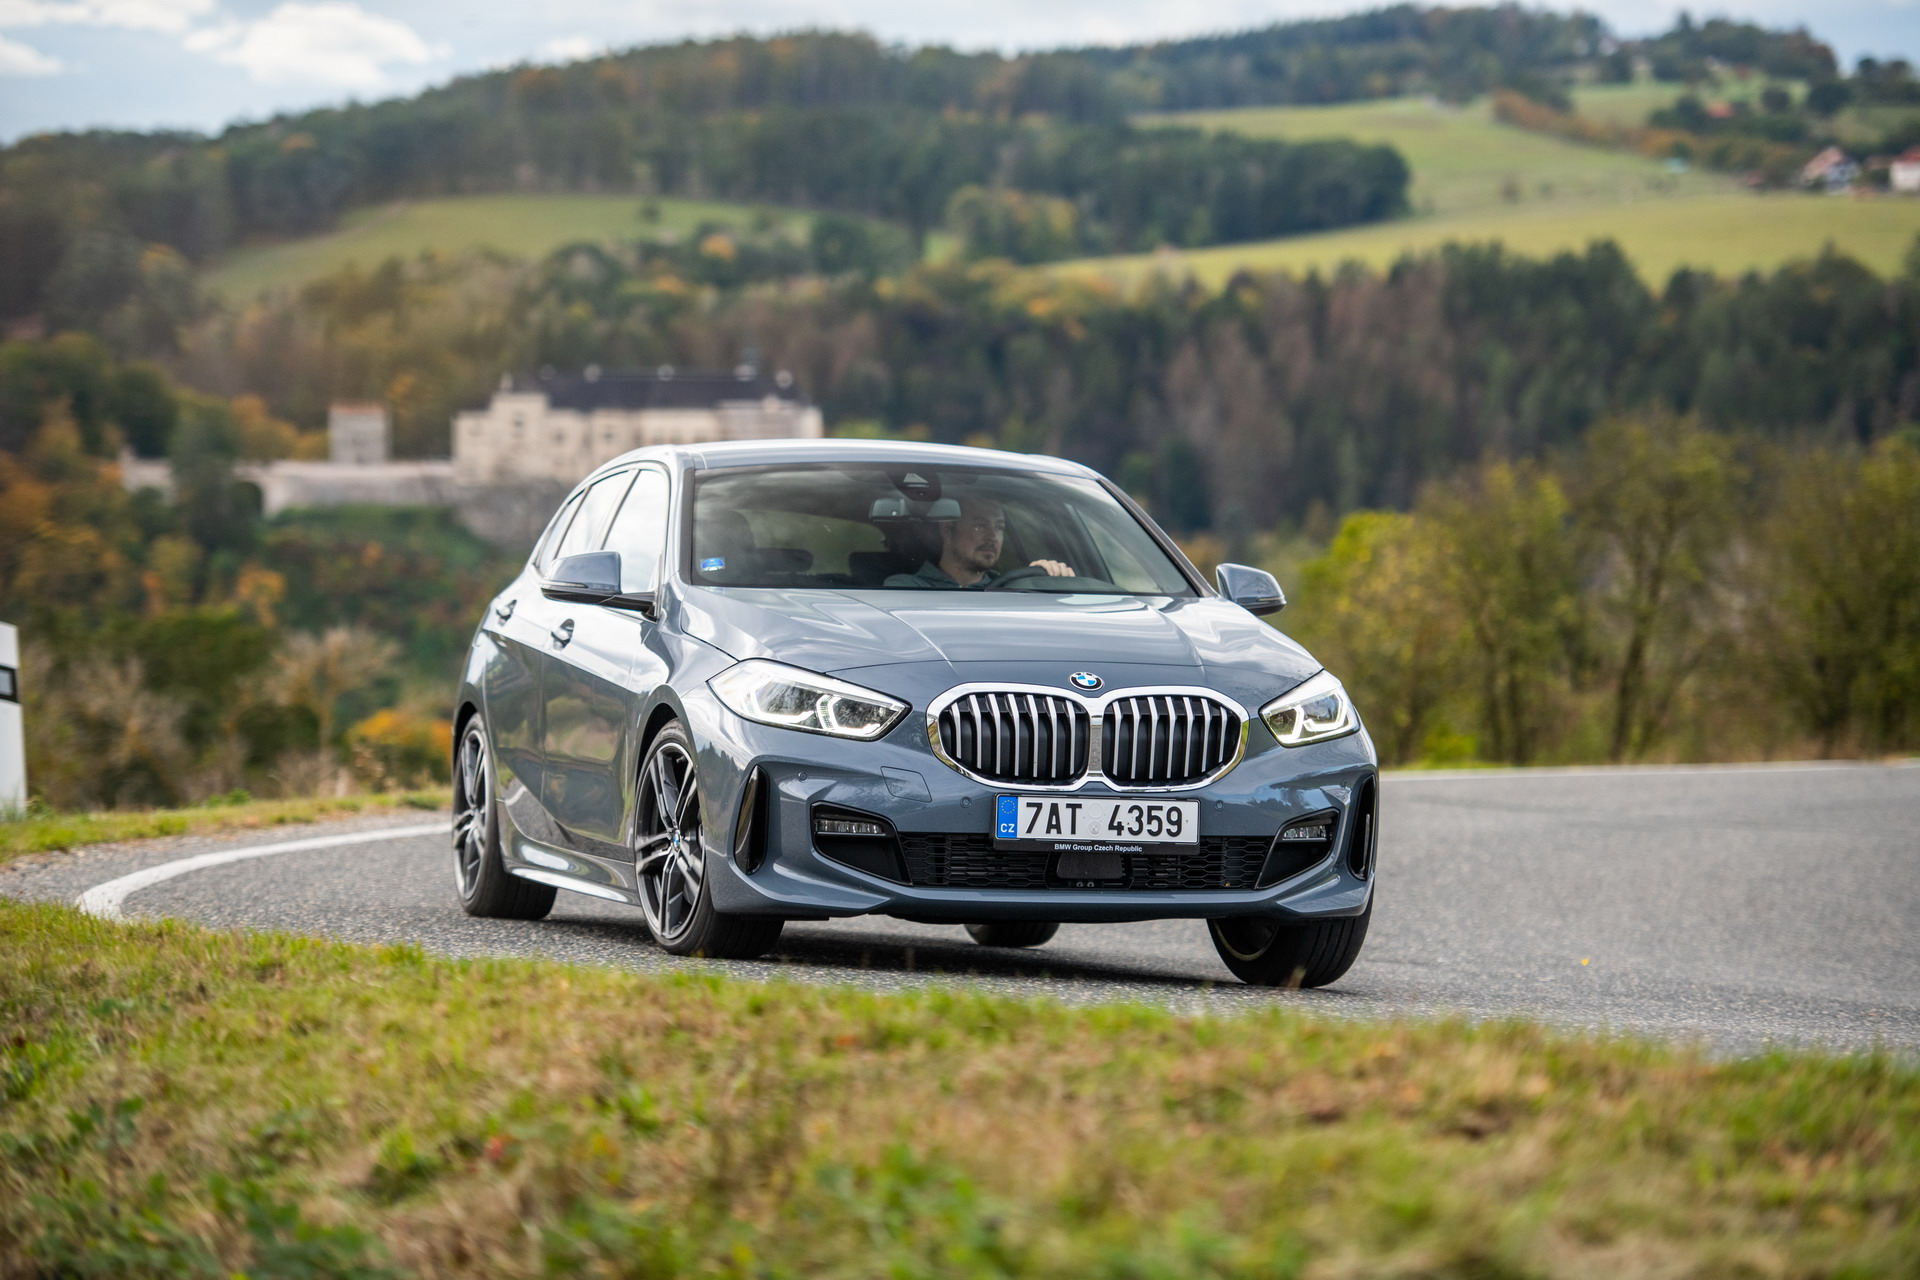 The New BMW 1 Series Czech Republic Press Launch 34